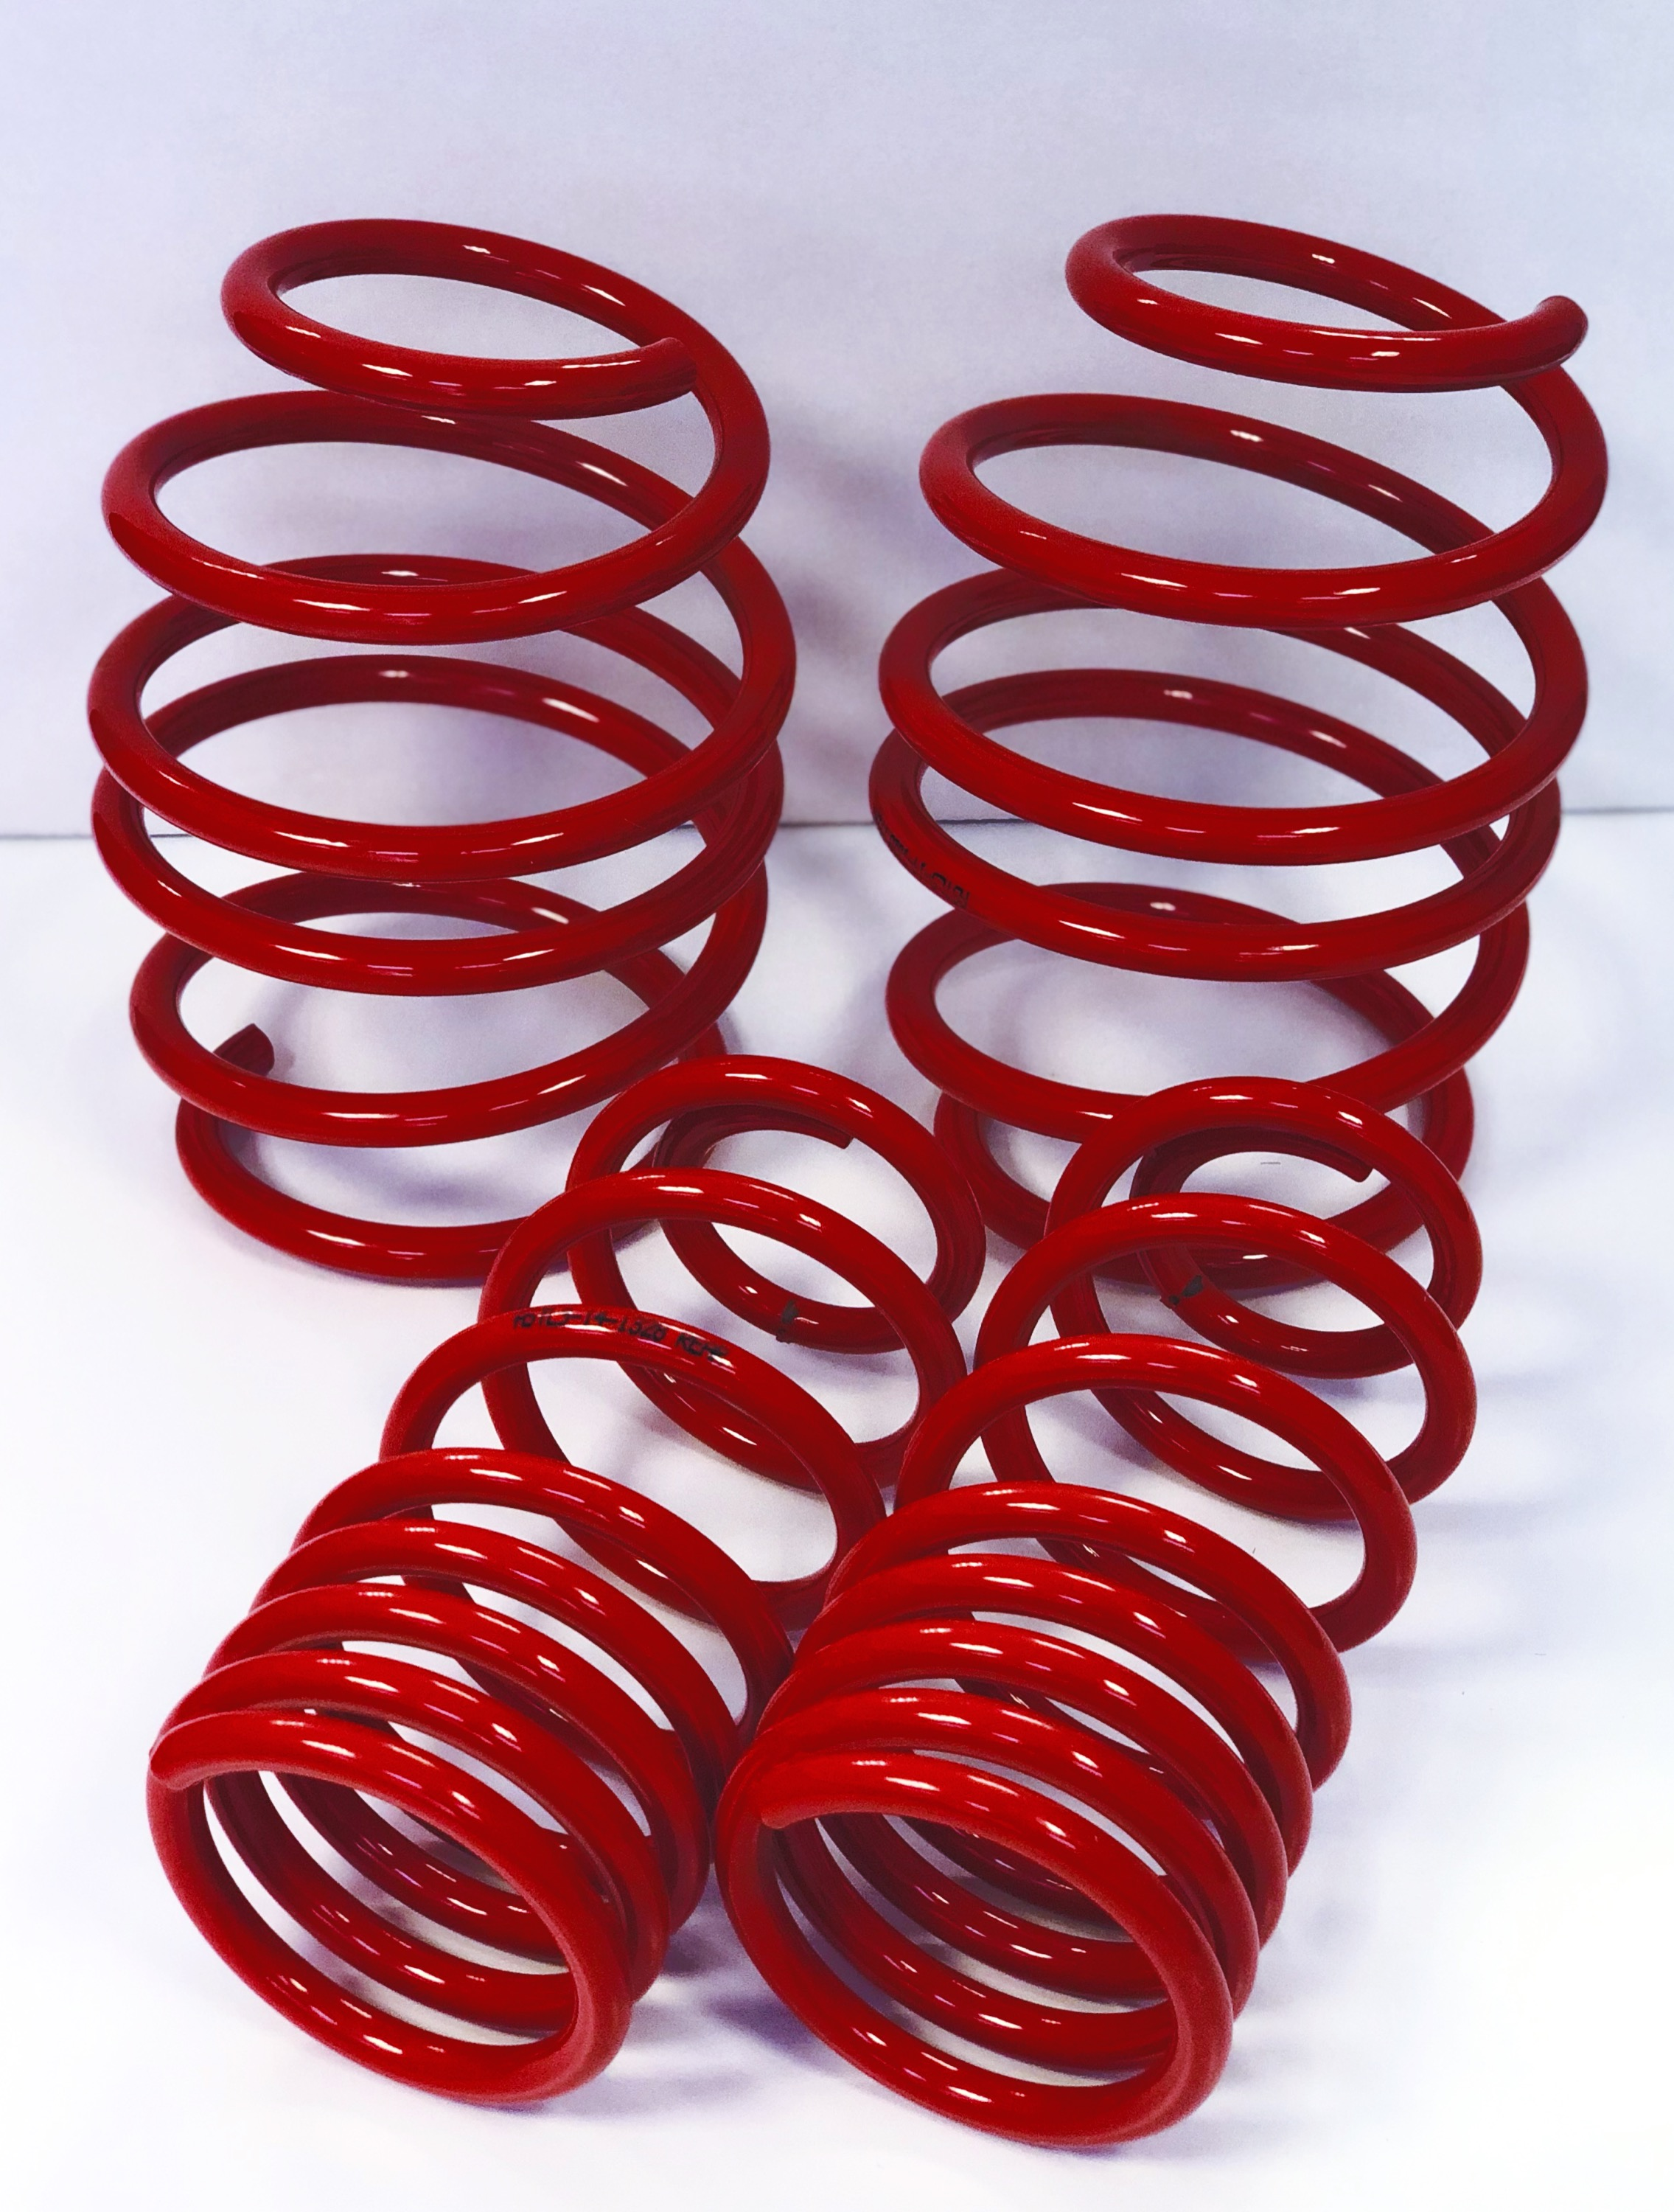 Vauxhall CORSA AST Suspension Lowering Springs 30/20